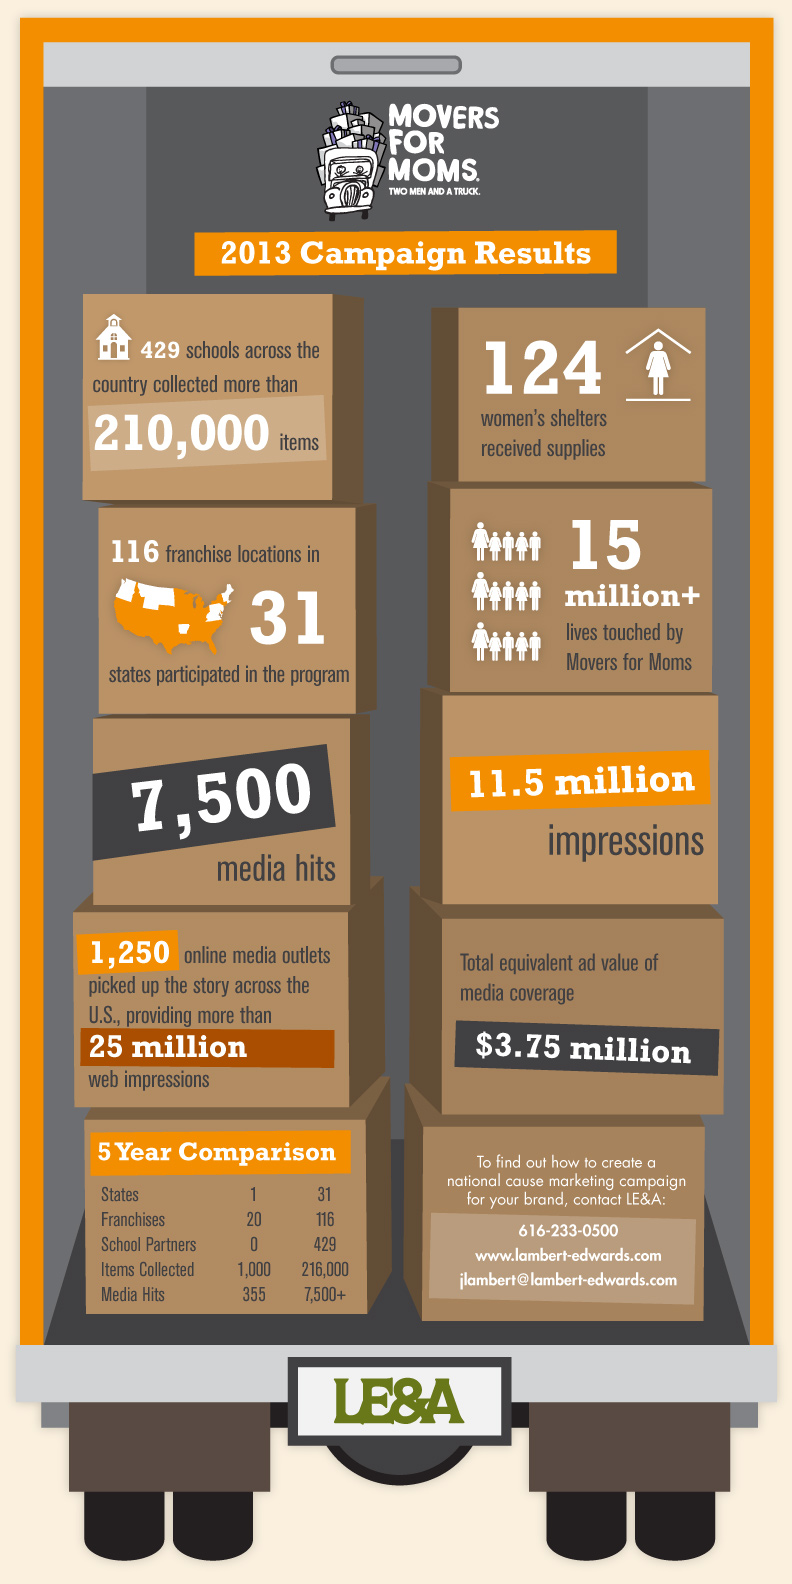 movers-for-moms-infographic.jpg